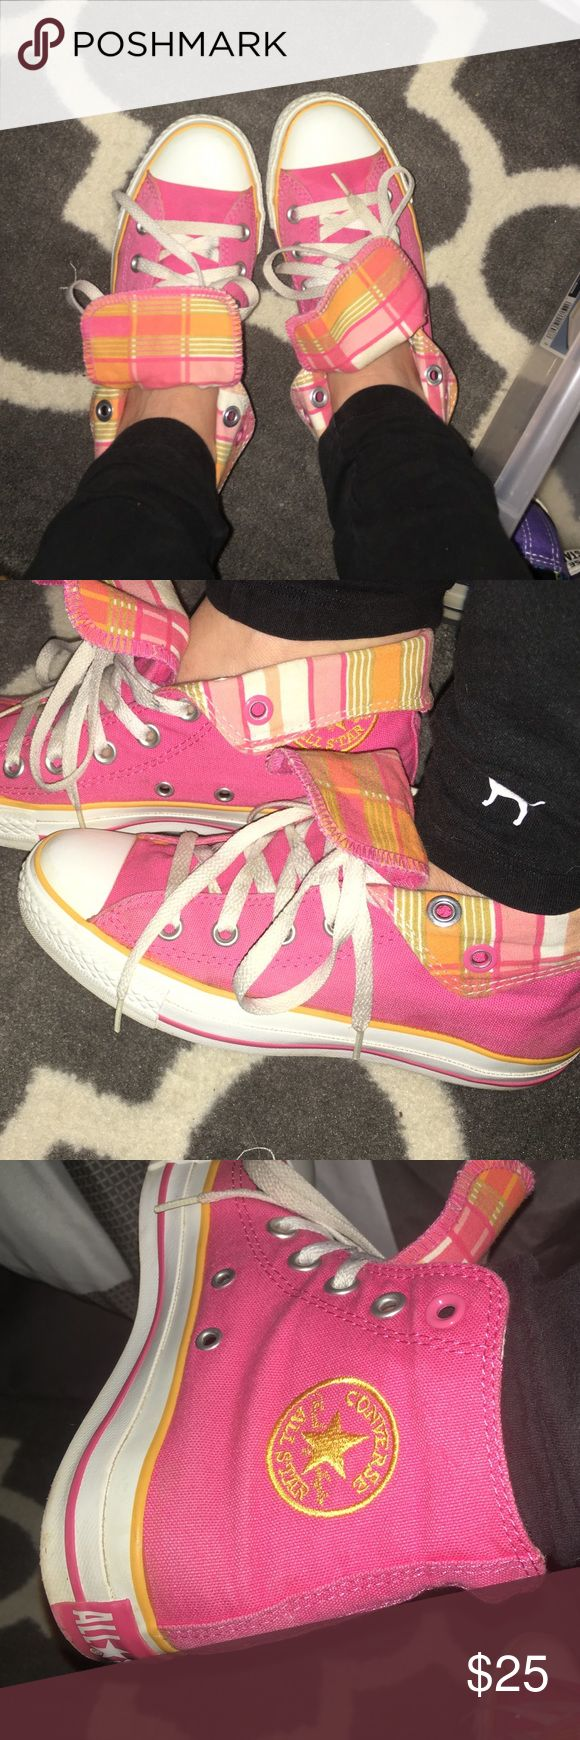 Hot Pink High Top Converse Gently worn, colors aren't as bright as they used to be. Can be worn regular or folded down to show plaid lining. These are super cute!! Converse Shoes Sneakers